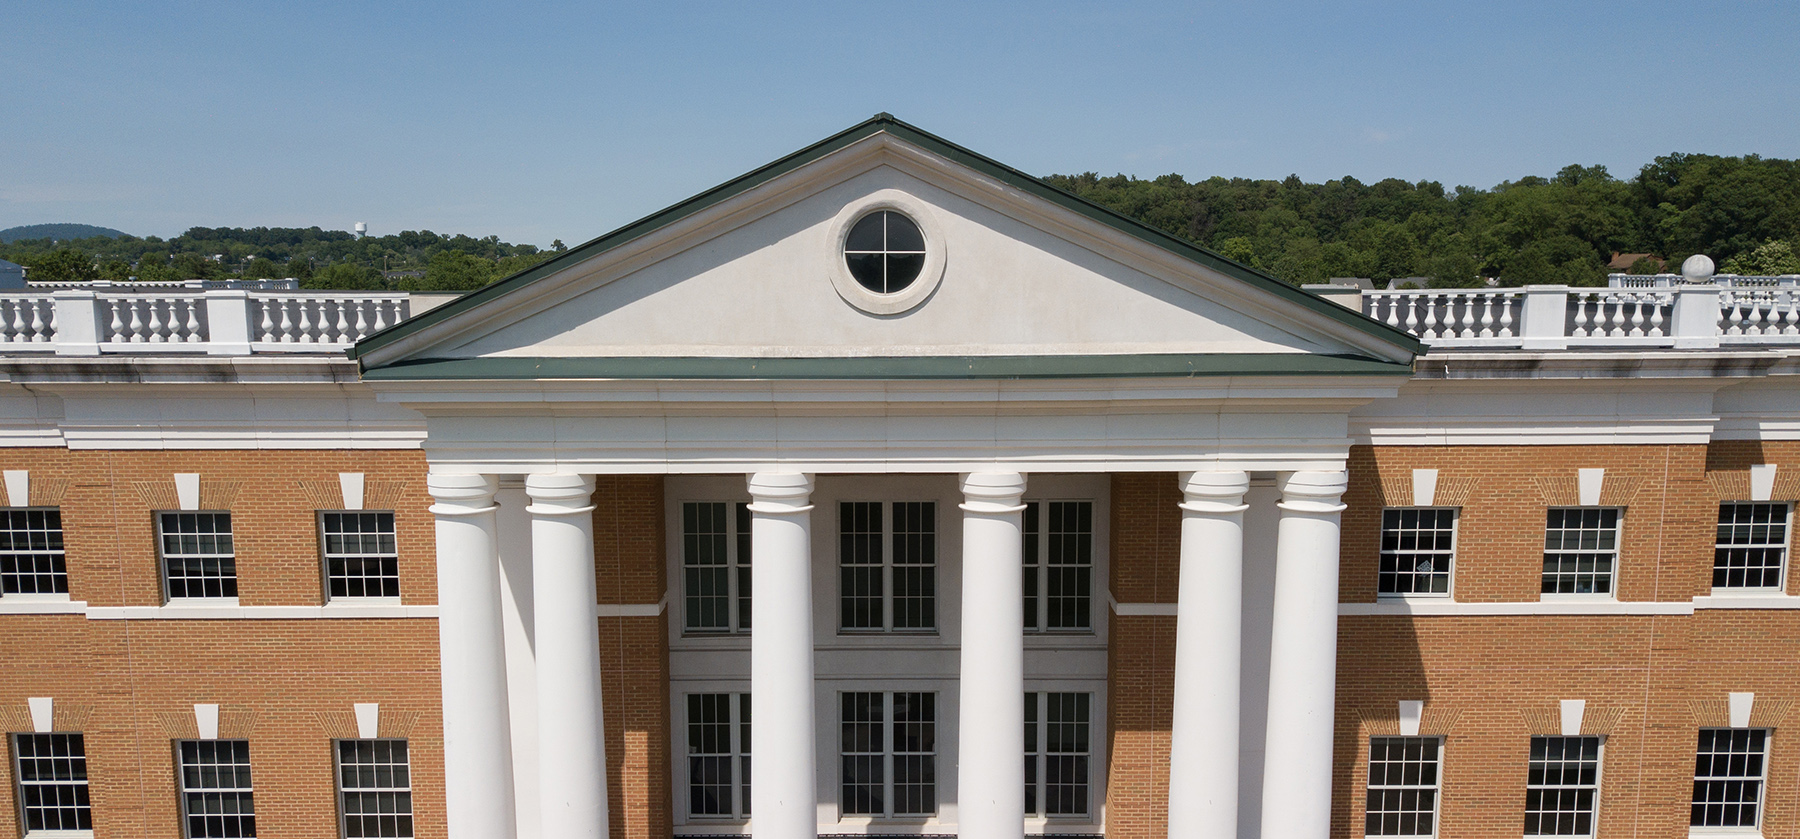 McKinney Center for Science and Mathematics